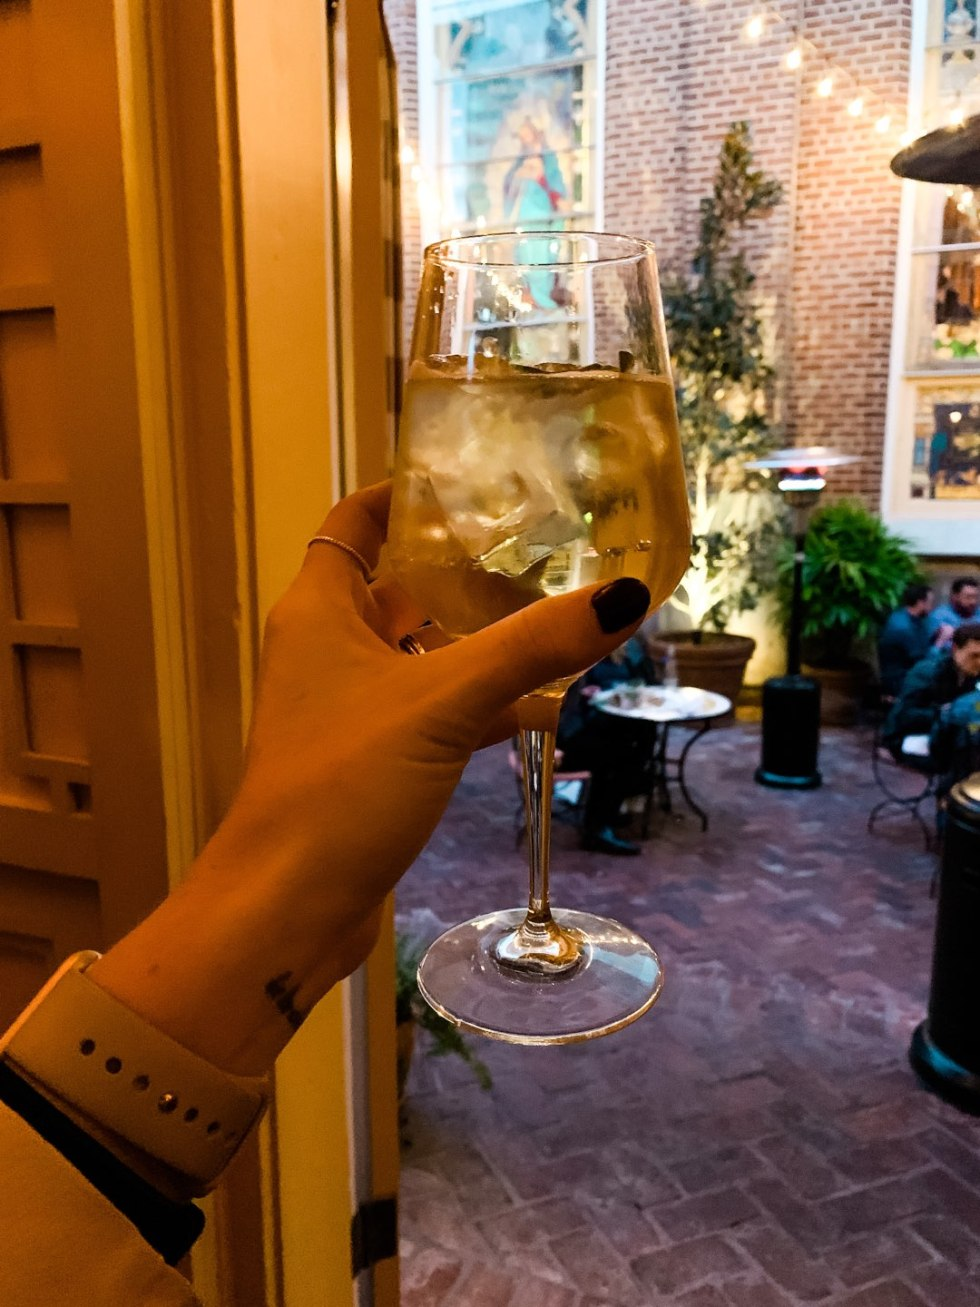 20 Moments I am Grateful for in 2020 - I'm Fixin' To - @imfixintoblog |Moments to be Grateful for by popular NC lifestyle blog, I'm Fixin' To: image of a woman holding a glass of white wine.